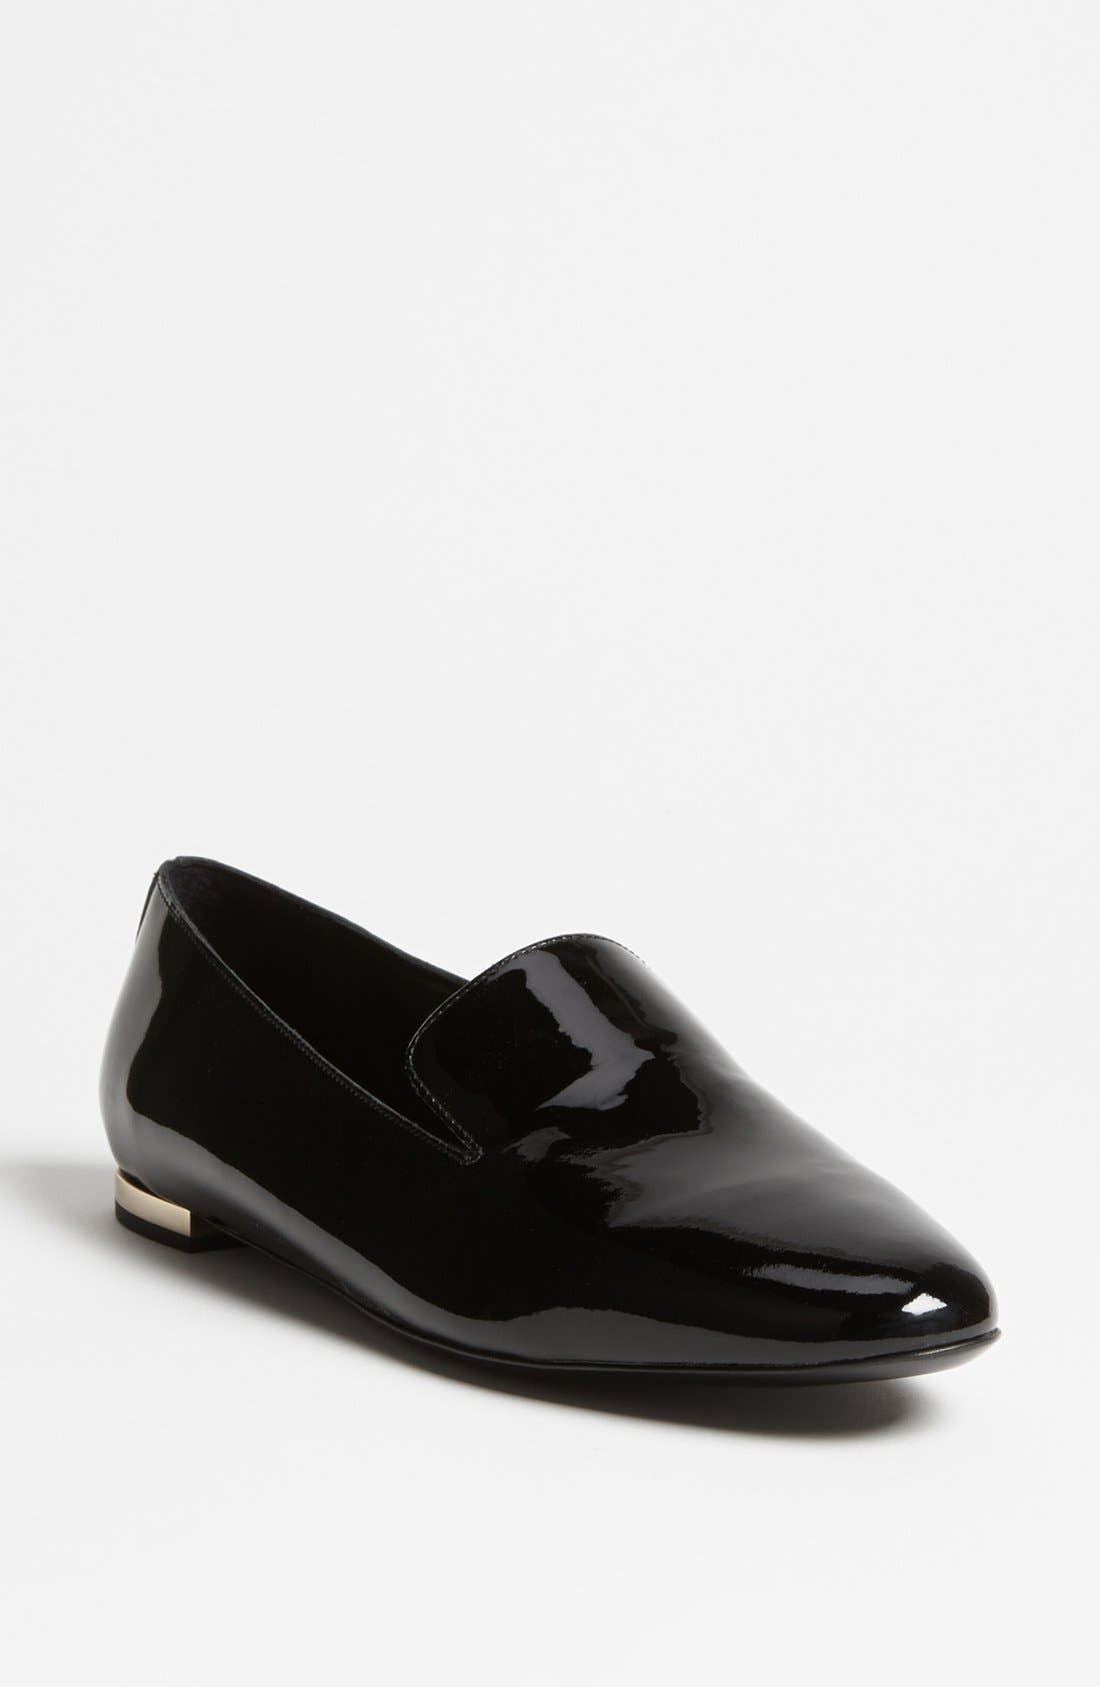 Main Image - Burberry 'Mormont' Loafer (Online Only)